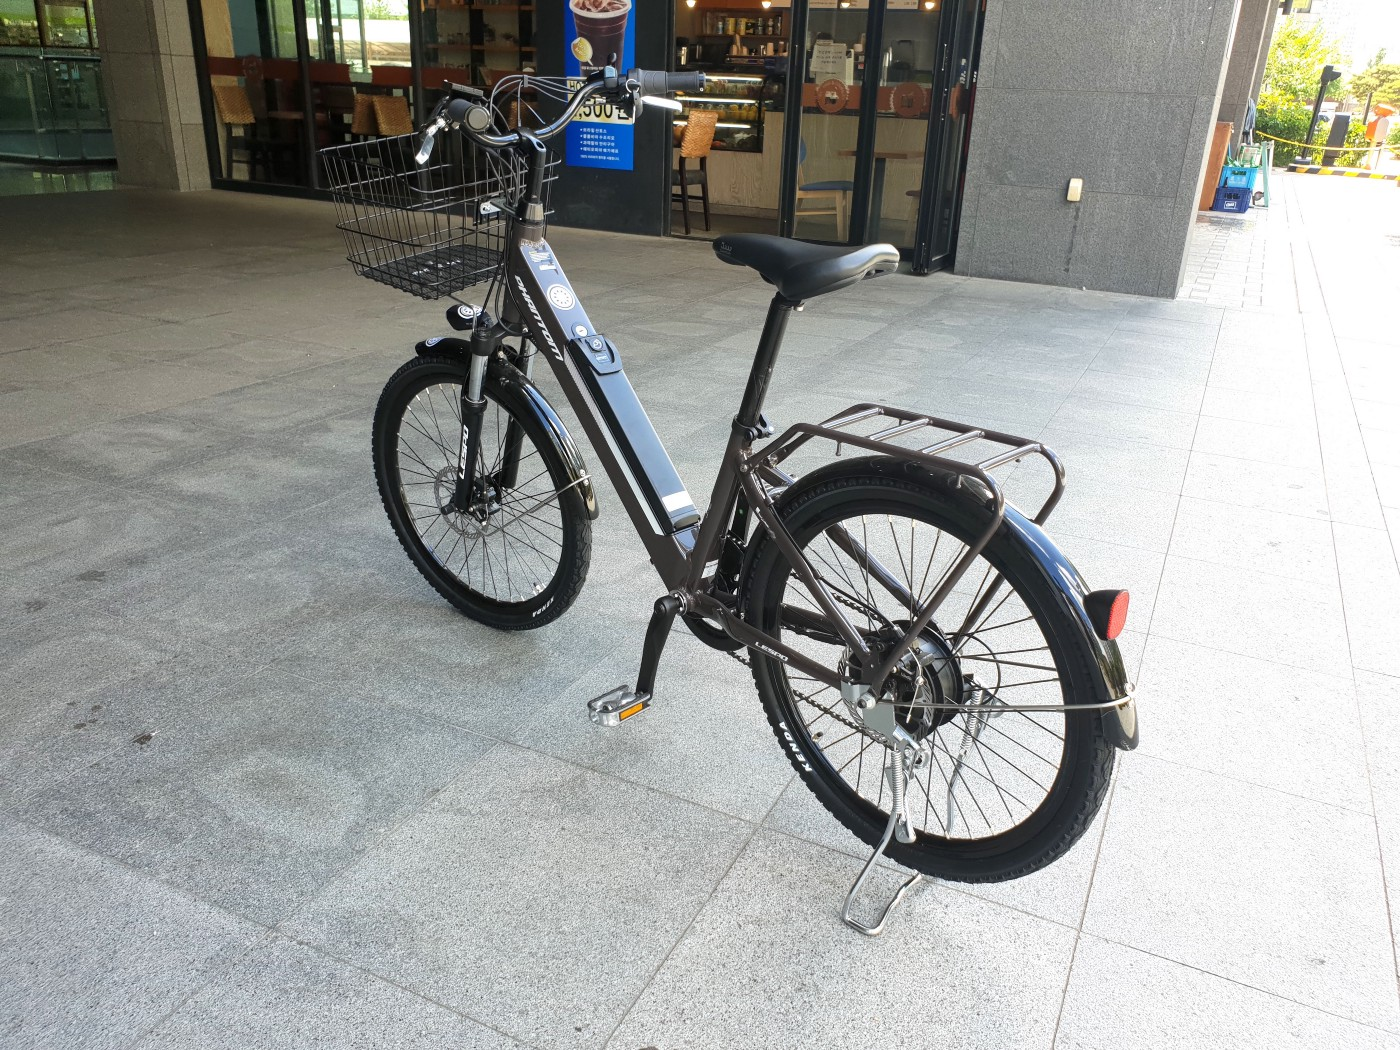 CyClean in Everyday Life: Riding CyClean's Electric Bicycle